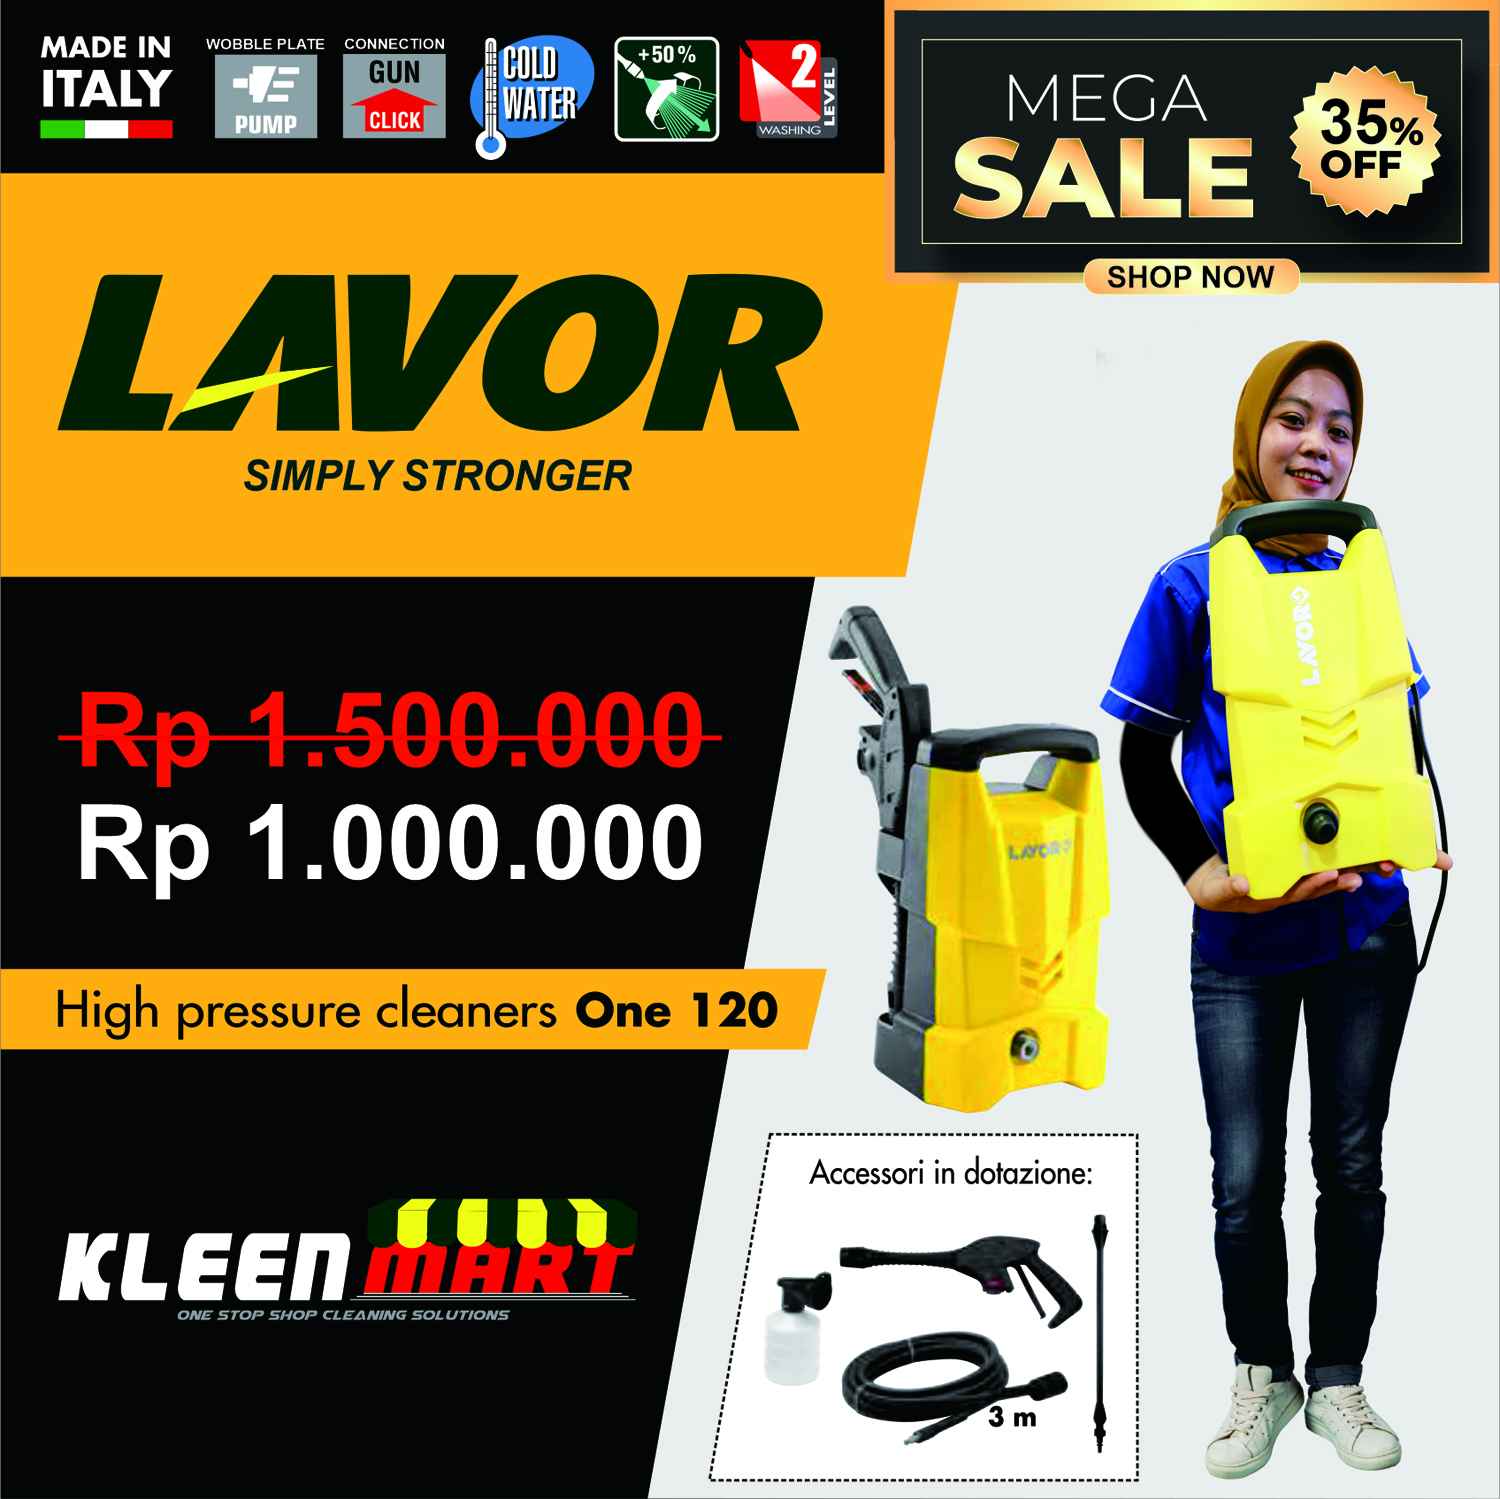 PROMO ONE 120 - HIGH PRESSURE CLEANER LAVOR MADE IN ITALY